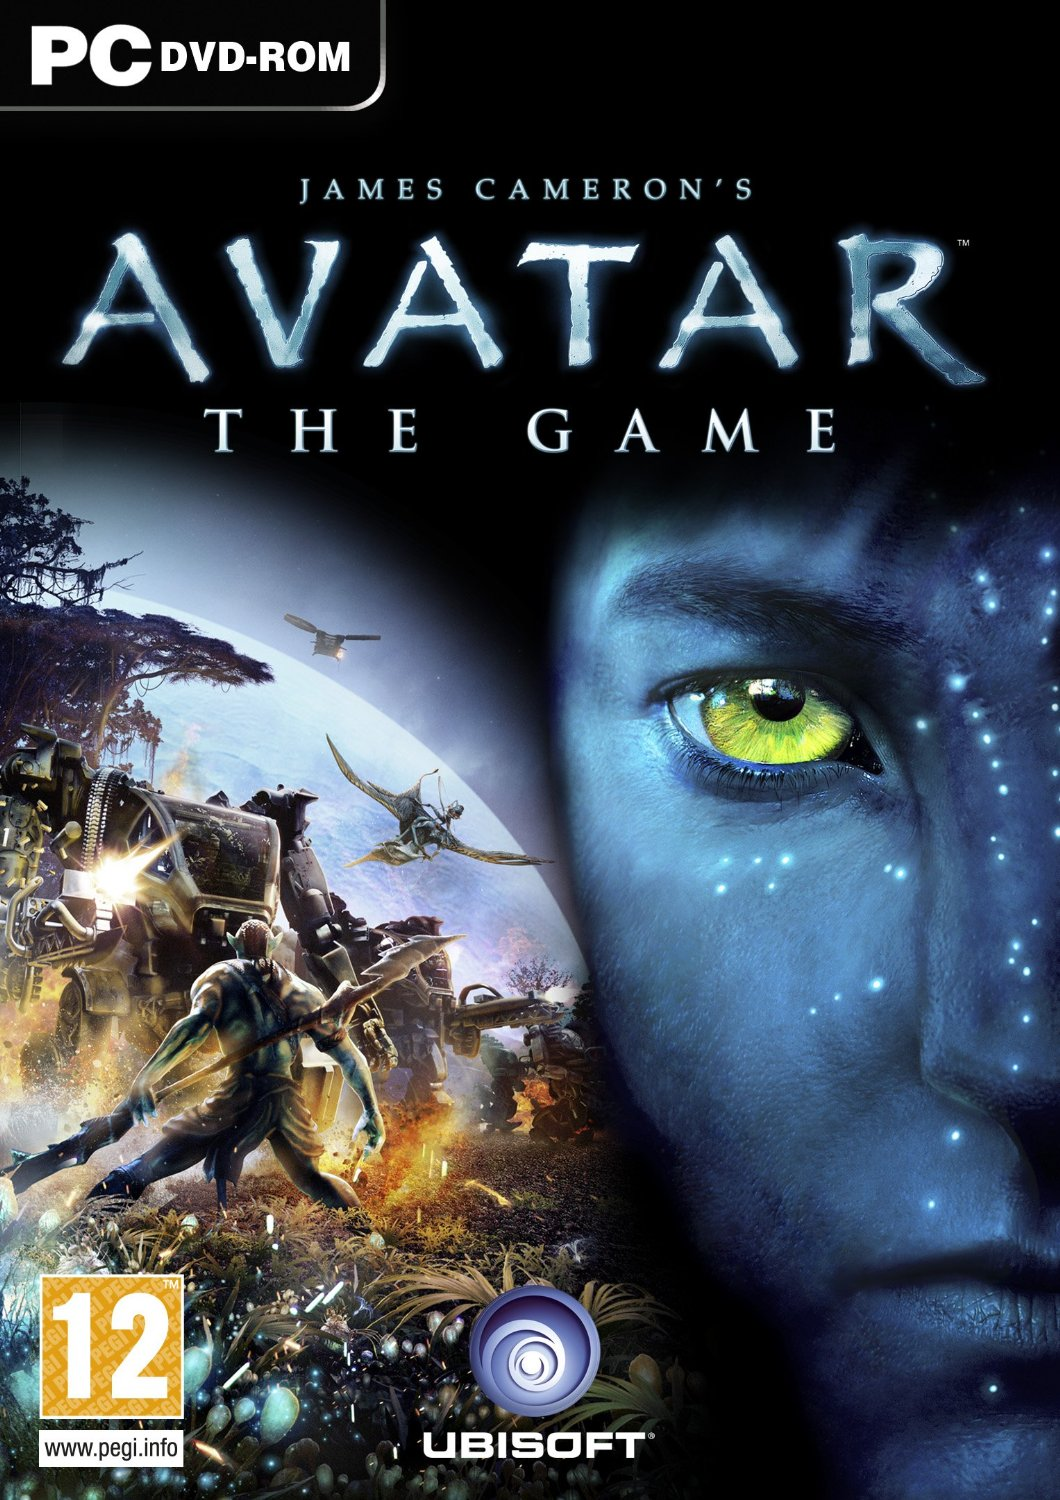 James Cameron's Avatar: The Game-PC                                                                                                                    By:Ubisoft                                            Eur:42.3 Ден:999